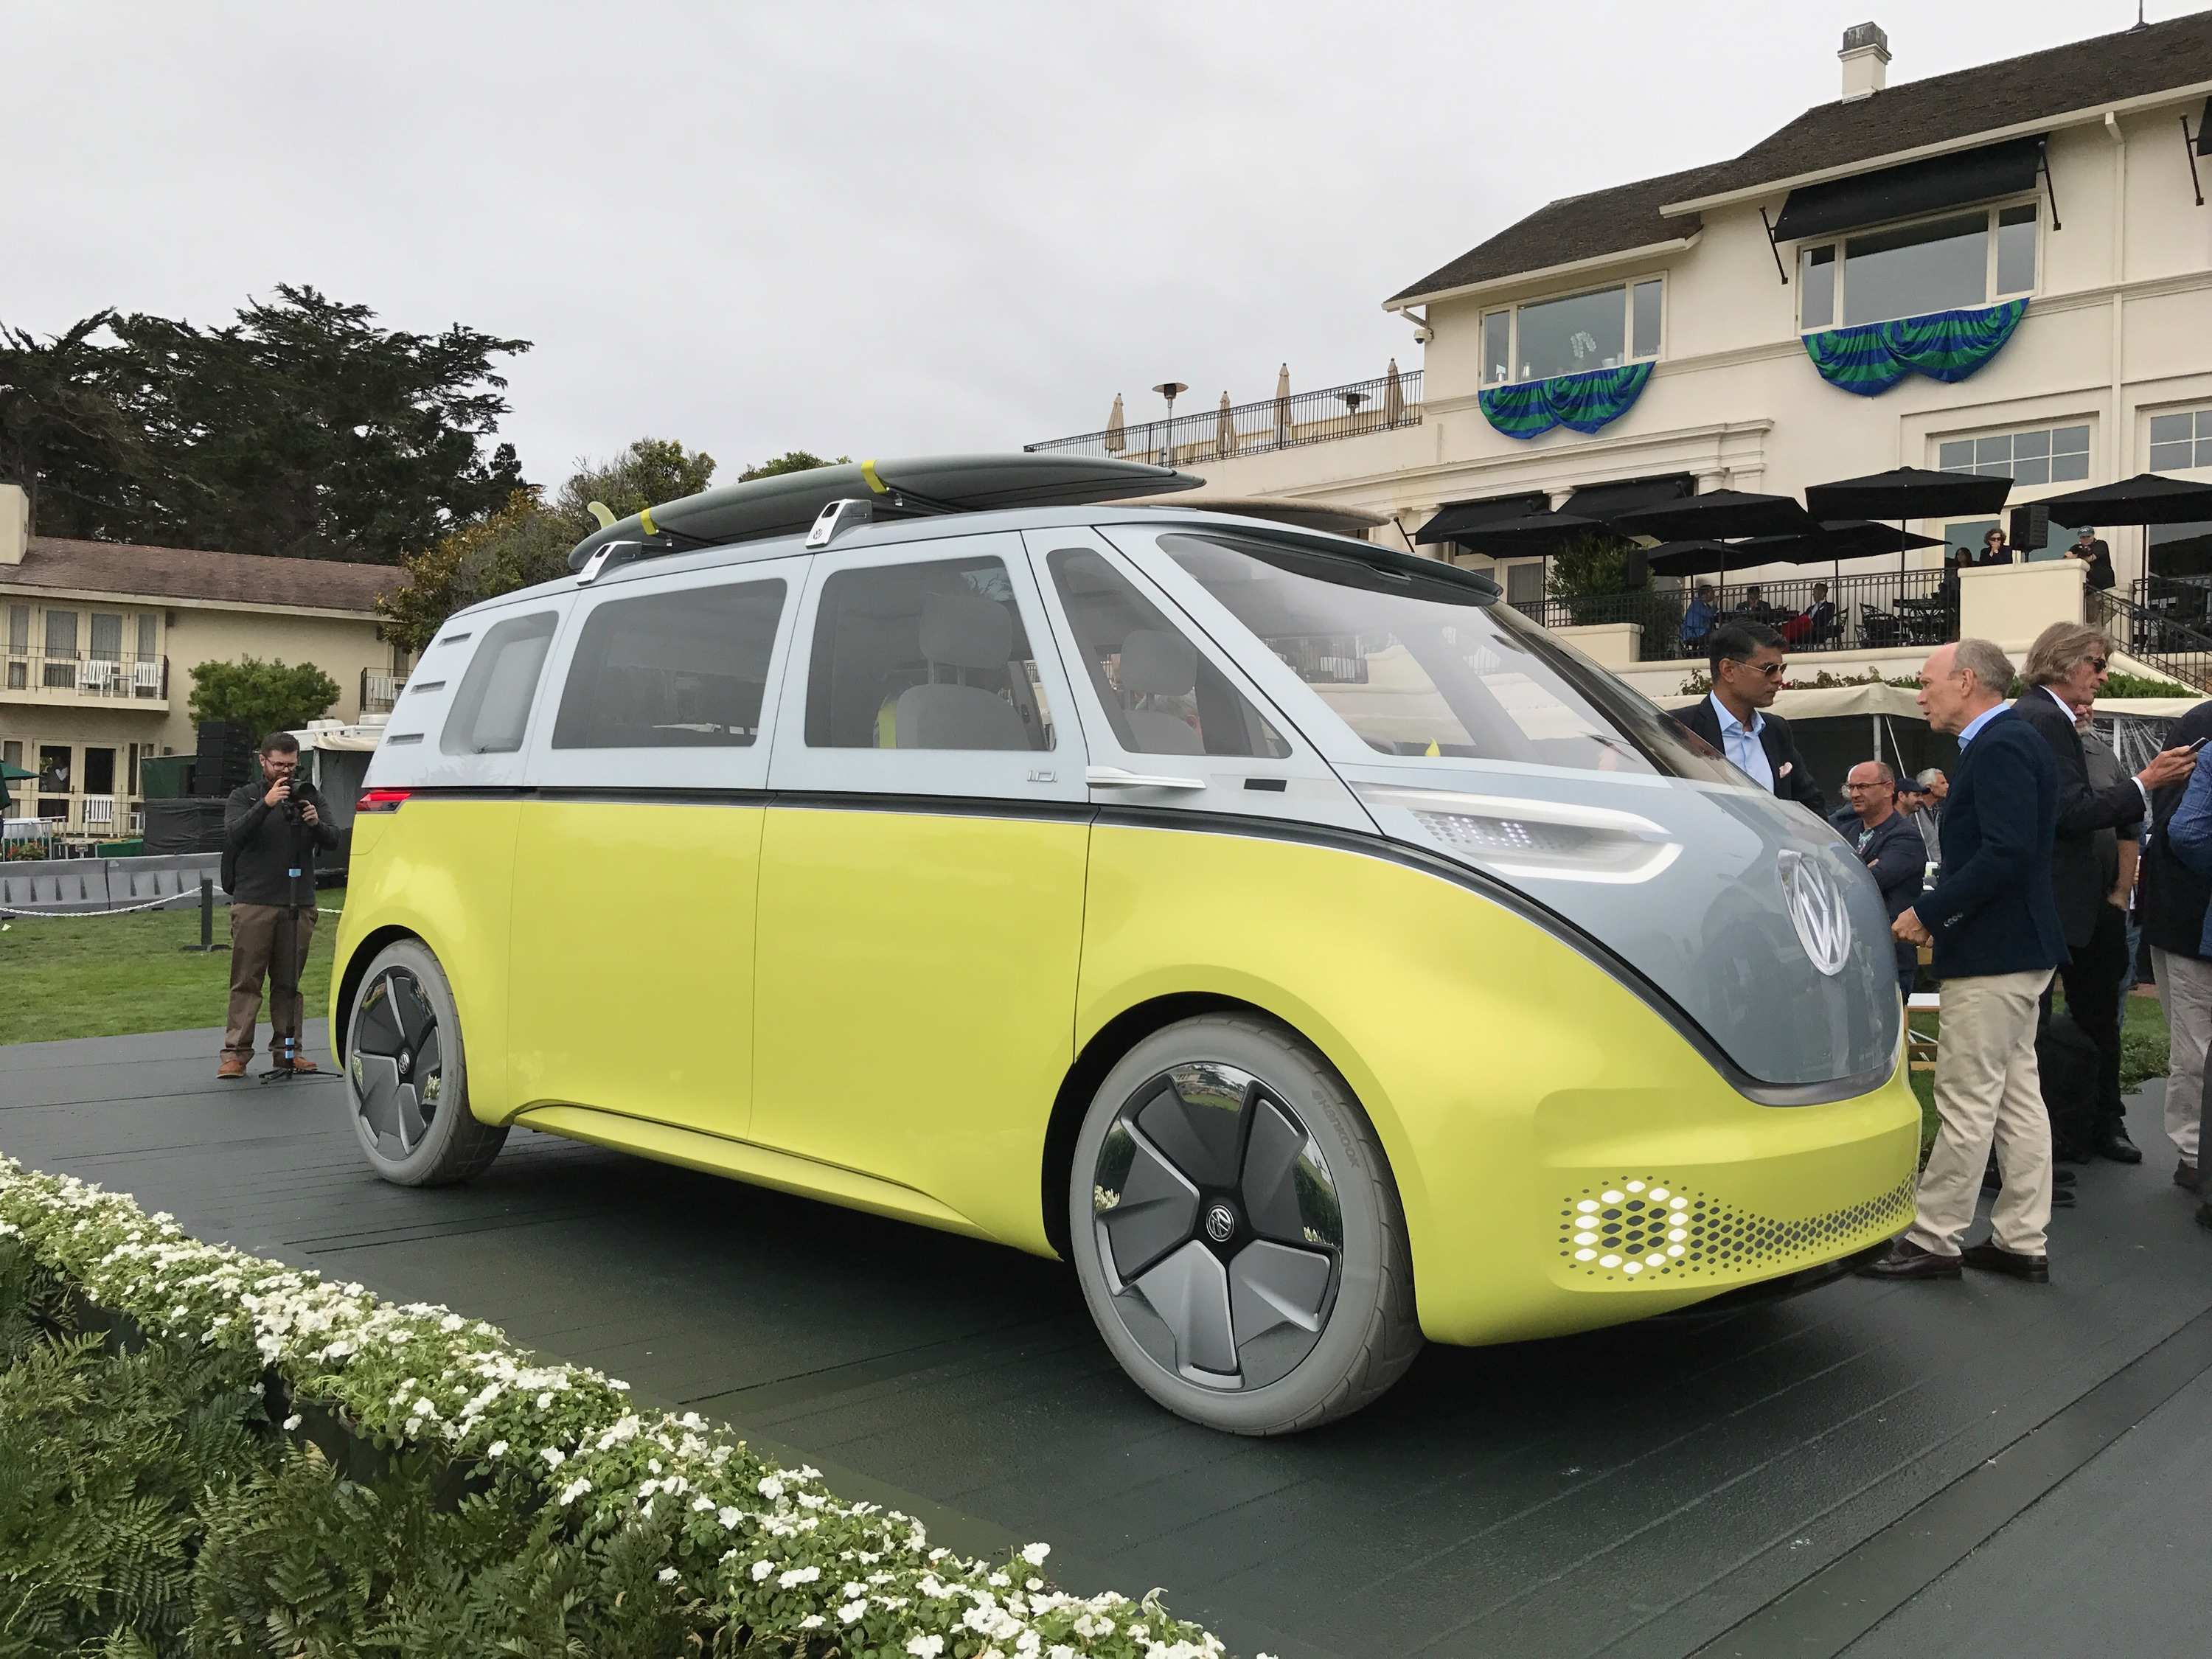 77 All New 2019 Vw Microbus Style for 2019 Vw Microbus